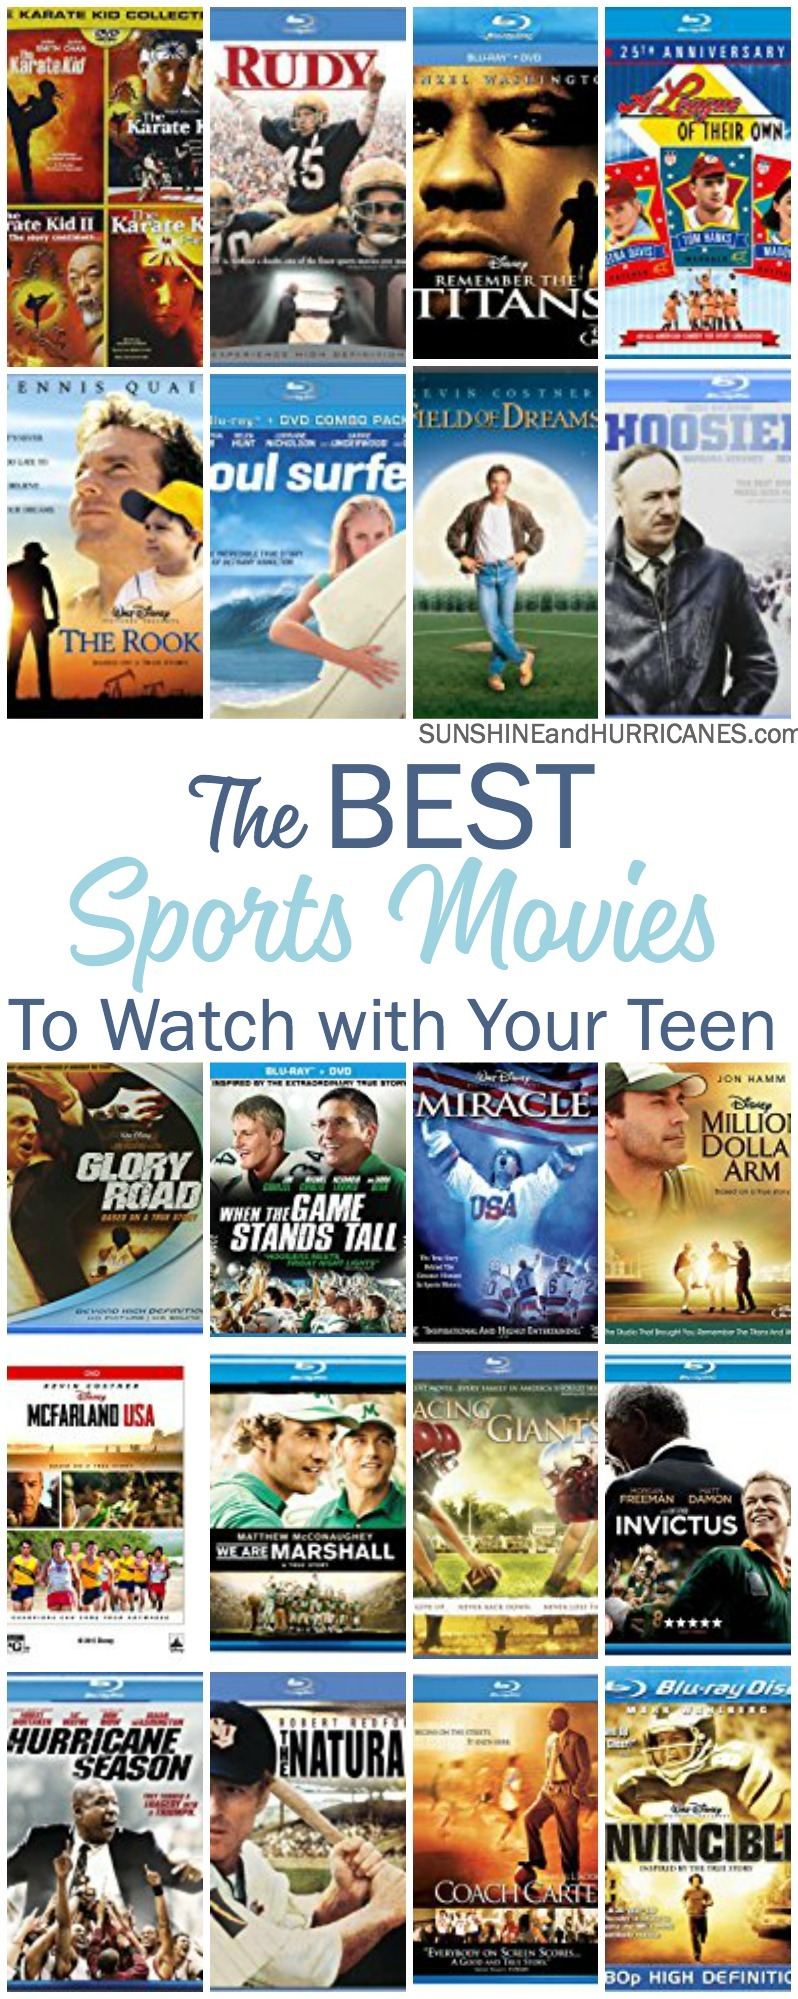 Plan some family time with your tween or teen athlete by scheduling a movie night and enjoying one of these inspirational sports movies for teens.